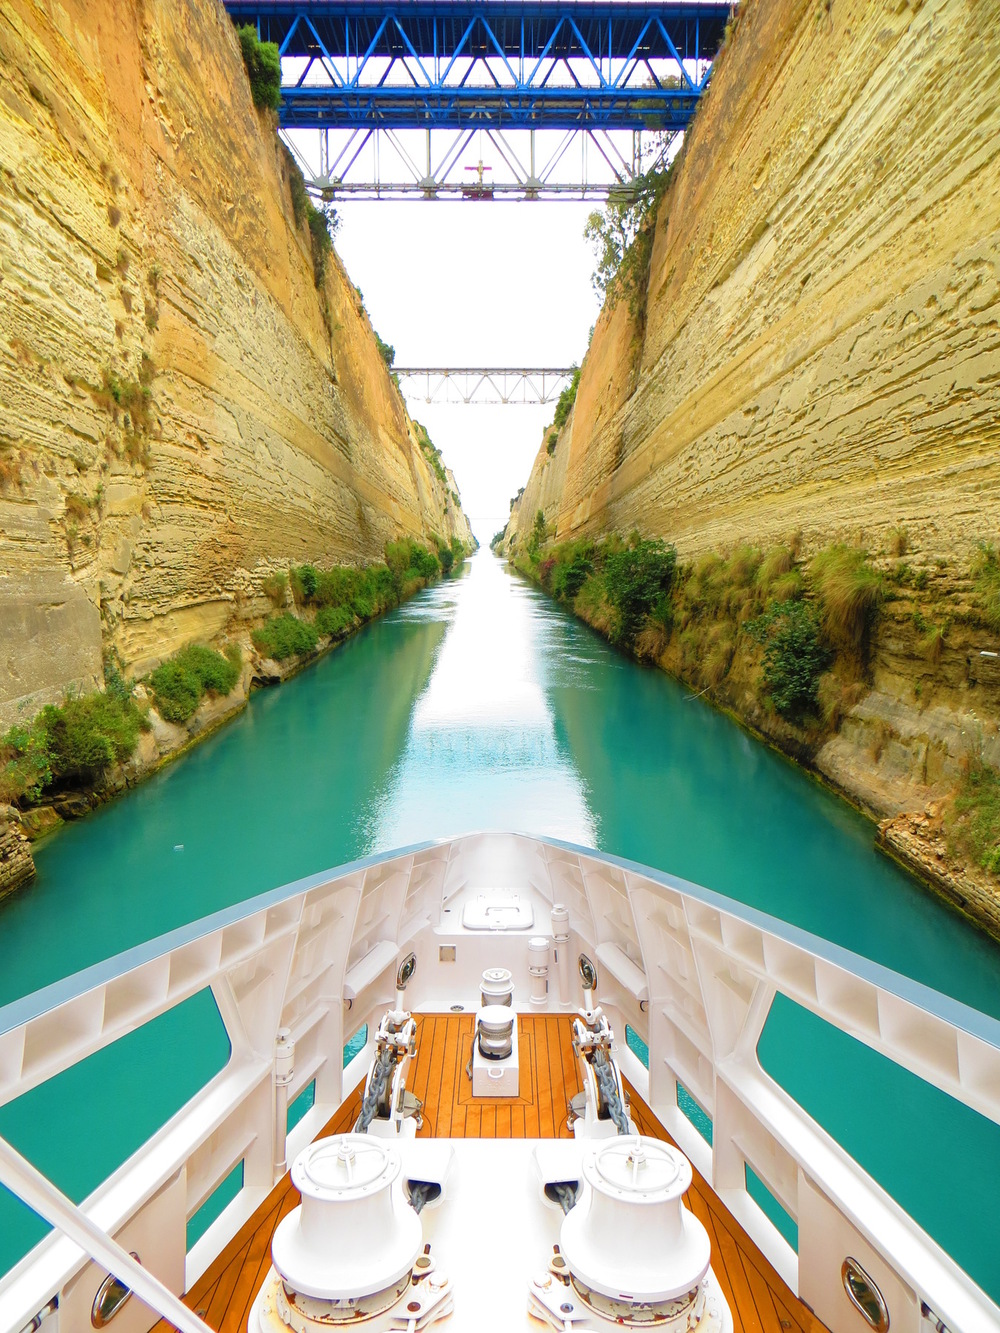 COLOUR-AND-SHAPE Photography - Corinth Canal, Greece - May 2014